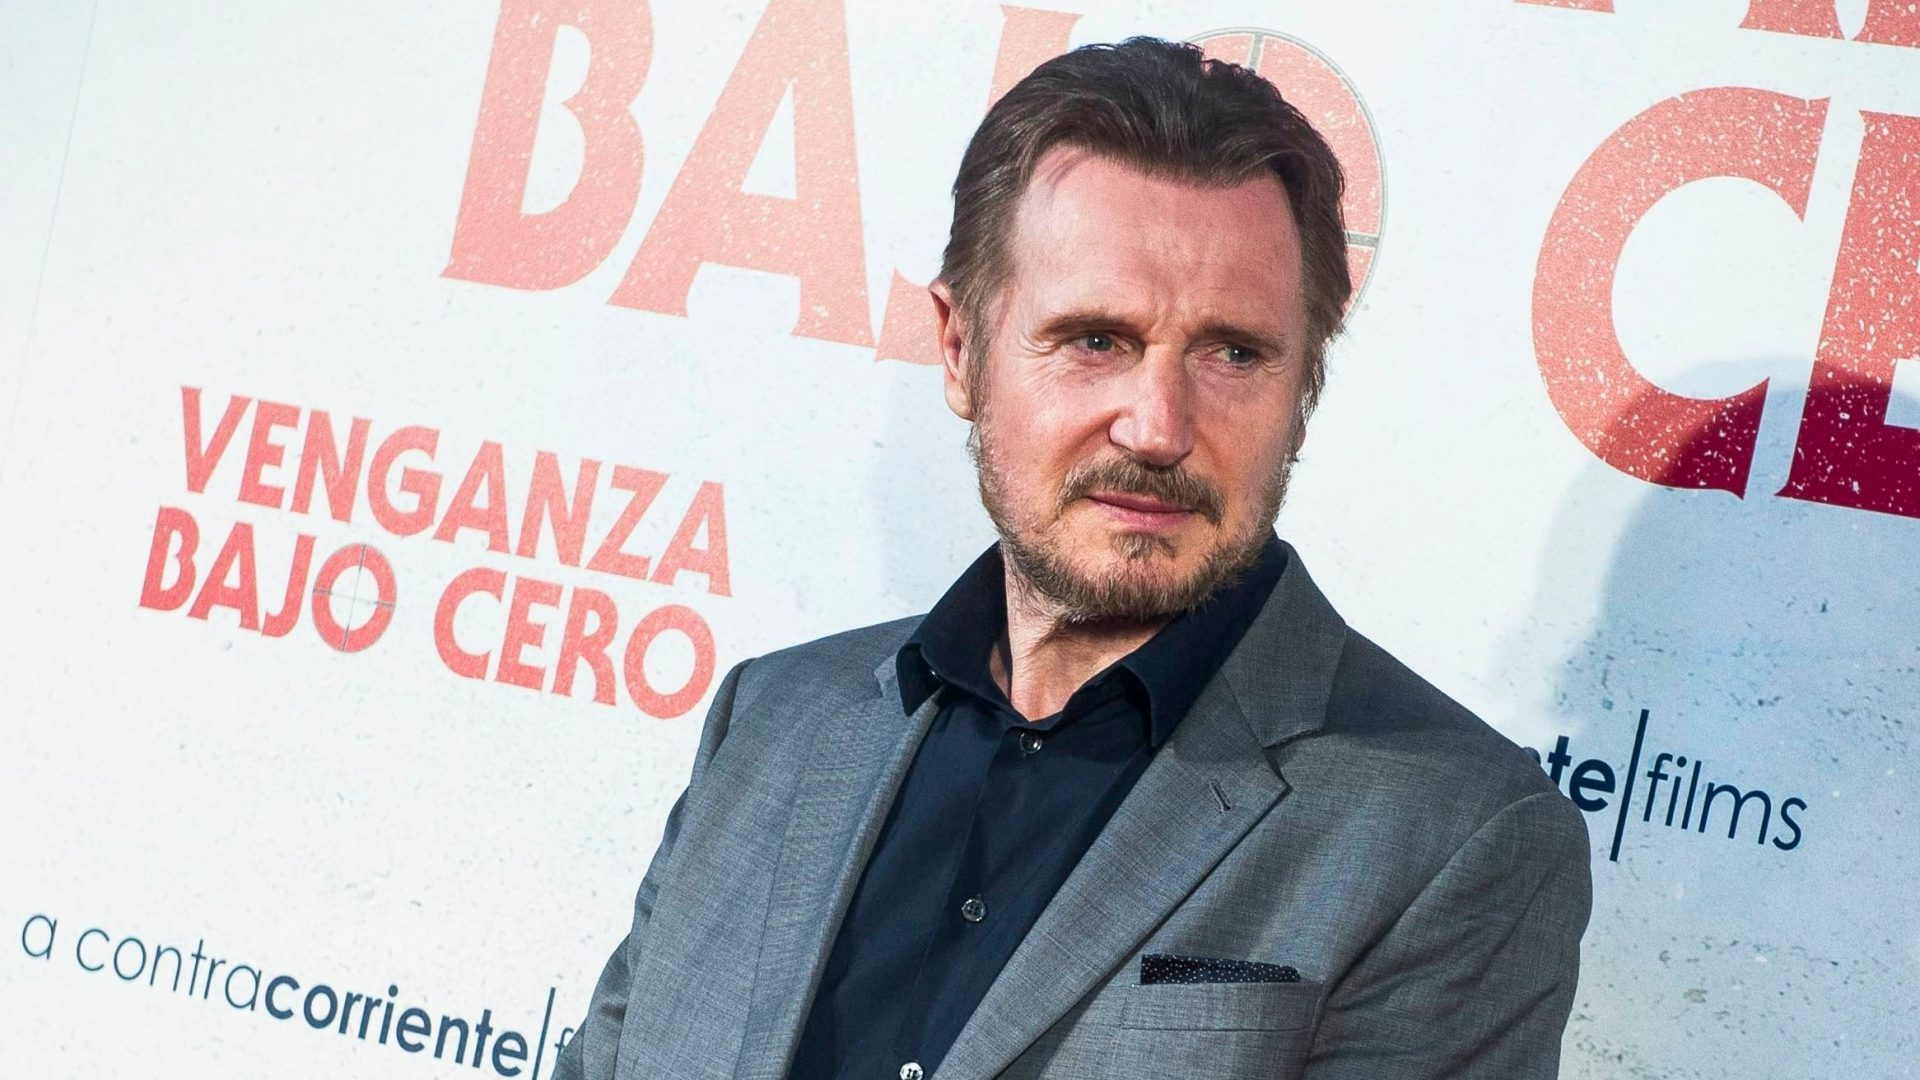 Mandatory Credit: Photo by Belen Diaz/DYDPPA/Shutterstock (10337370bc)Liam Neeson'Cold Pursuit' Film Premiere, Arrivals, Capitol Cinema, Madrid, Spain - 15 Jul 2019.